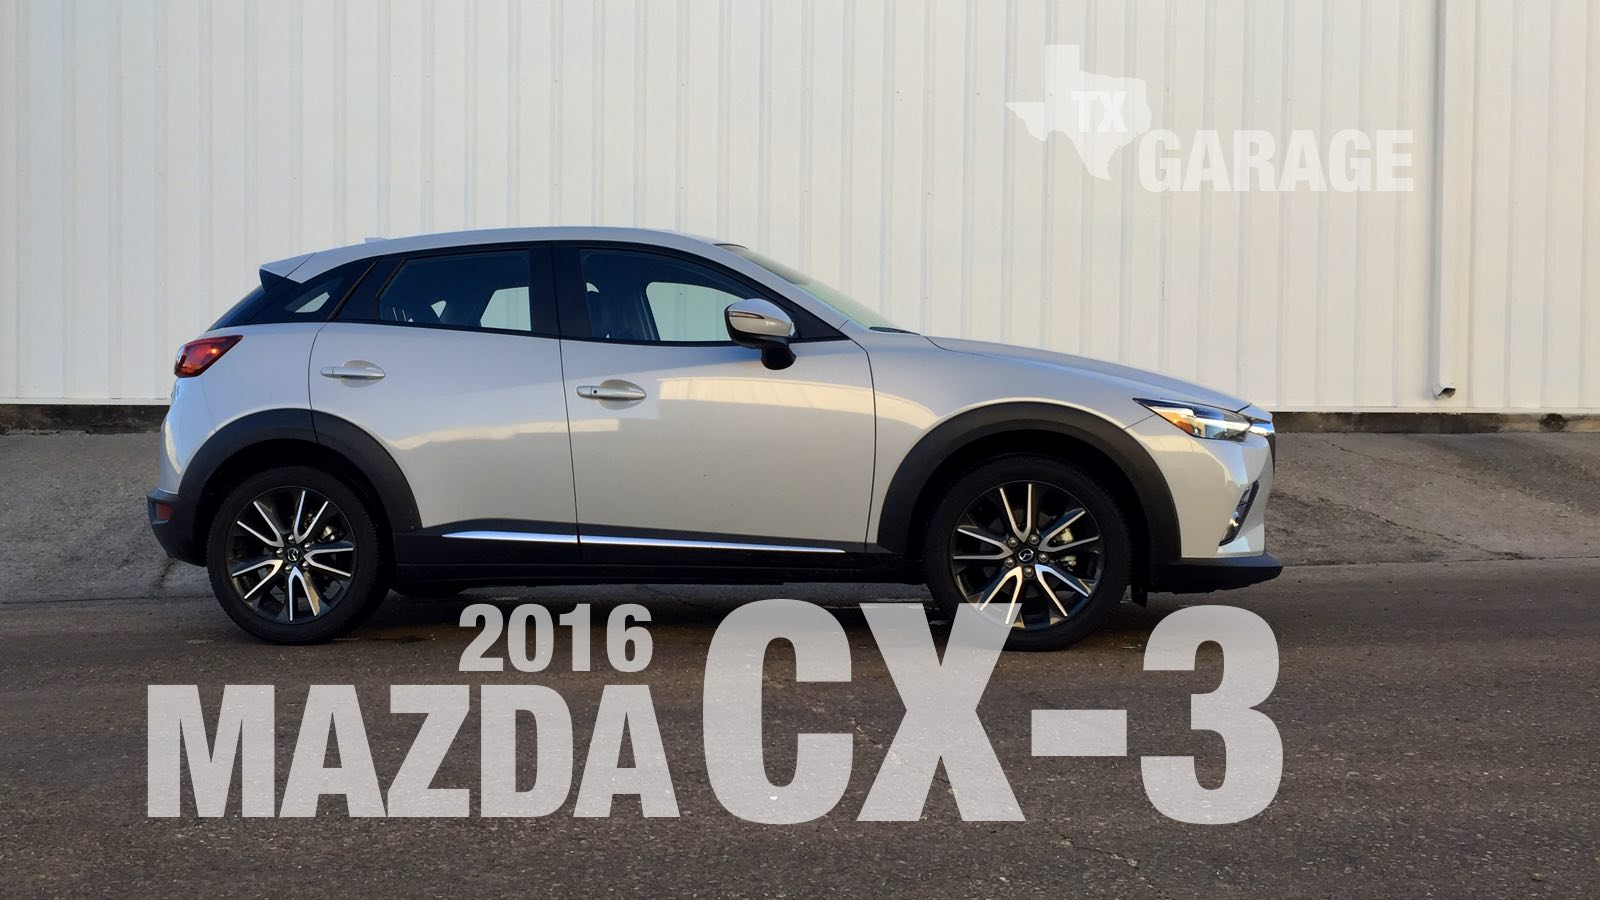 The 2016 Mazda CX-3 by txGarage